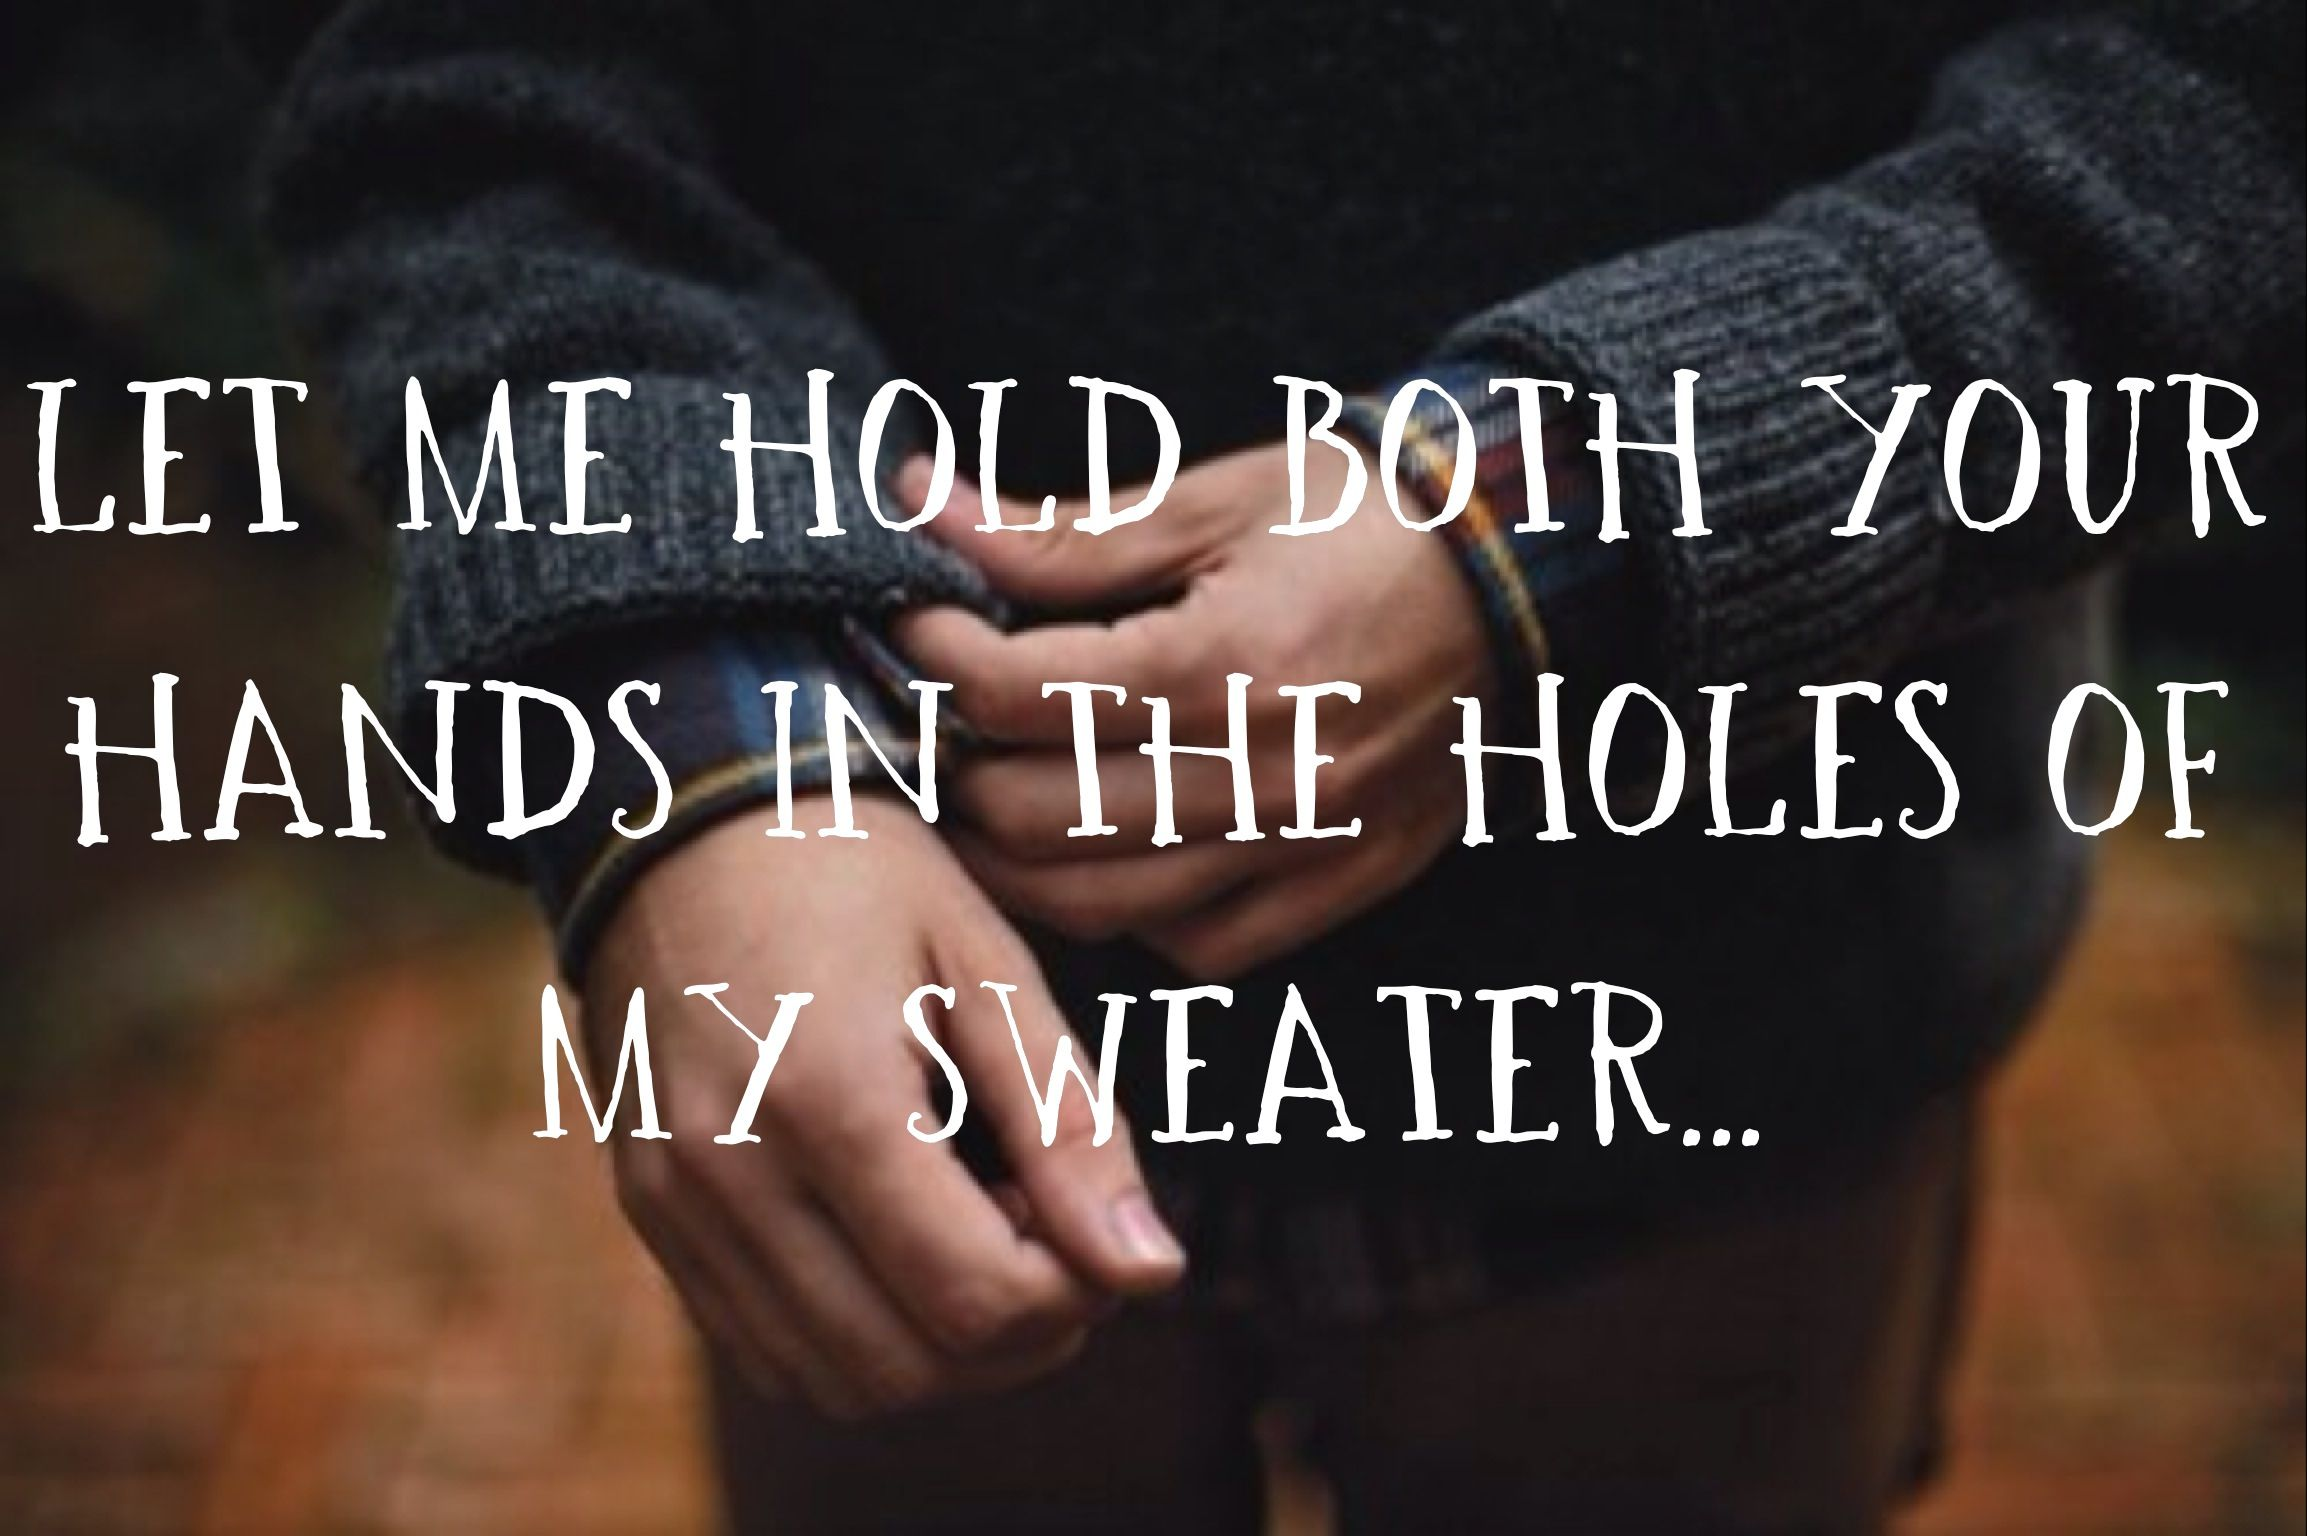 Let Me Hold Both Your Hands In The Holes Of My Sweater Sweater